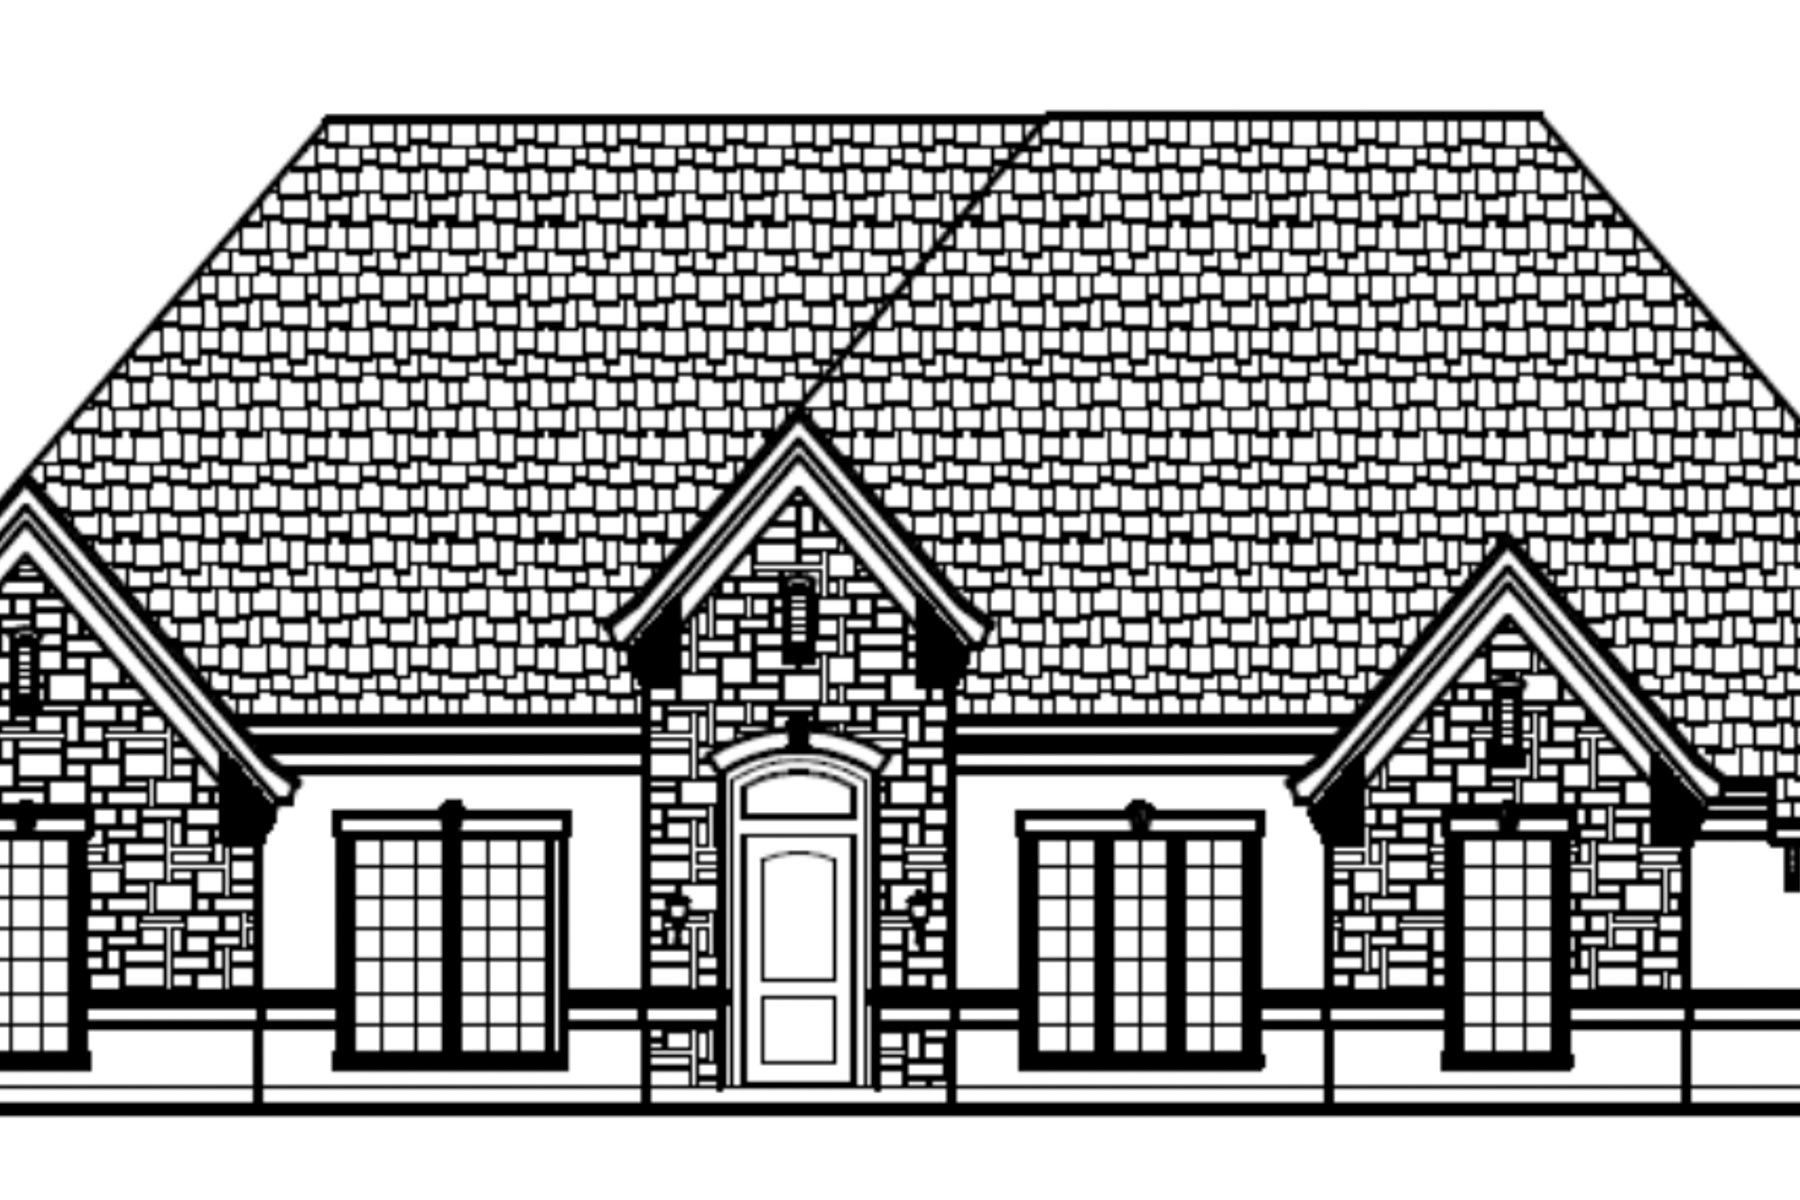 Casa Unifamiliar por un Venta en New Construction by Peyton Thomas Homes 315 Bear Country Dr Aledo, Texas, 76008 Estados Unidos